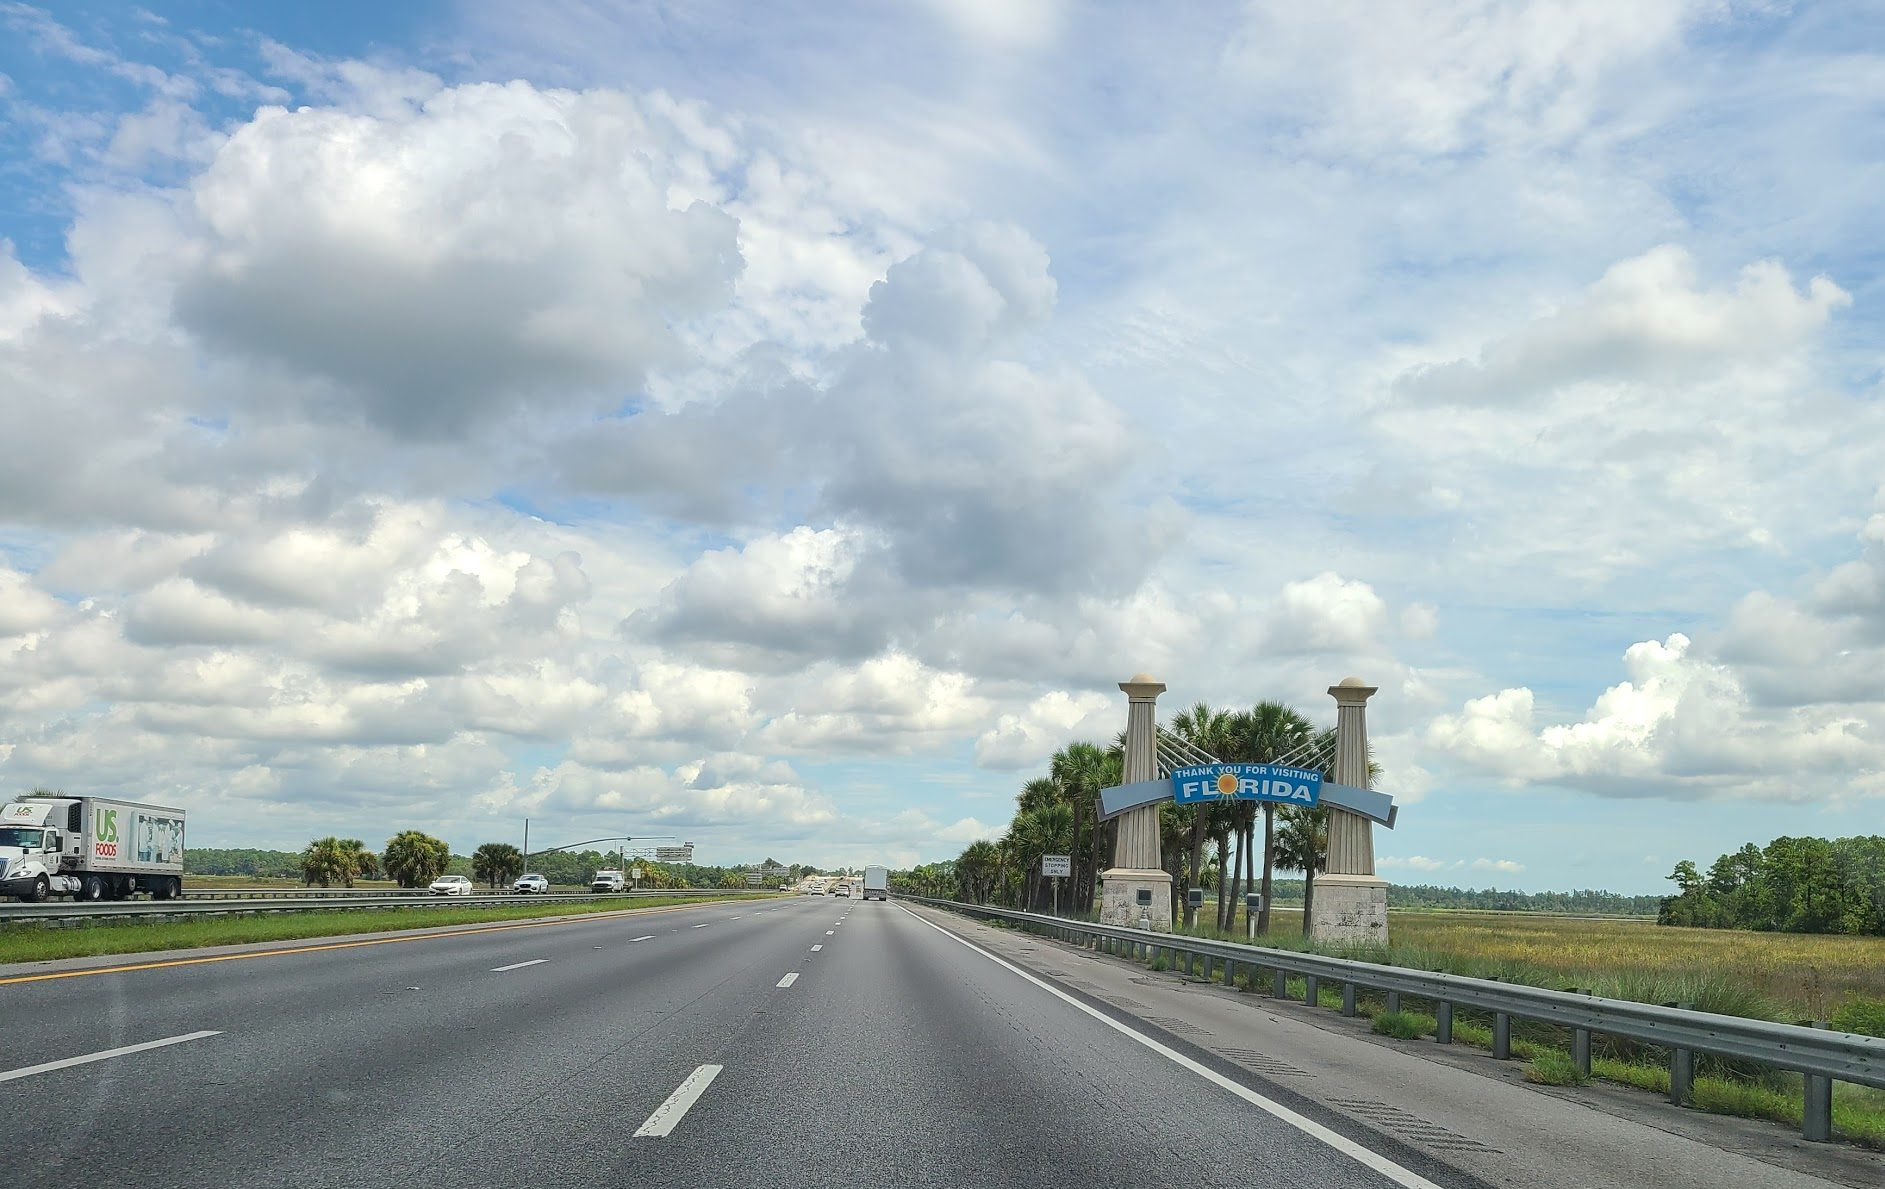 Driving out of Florida